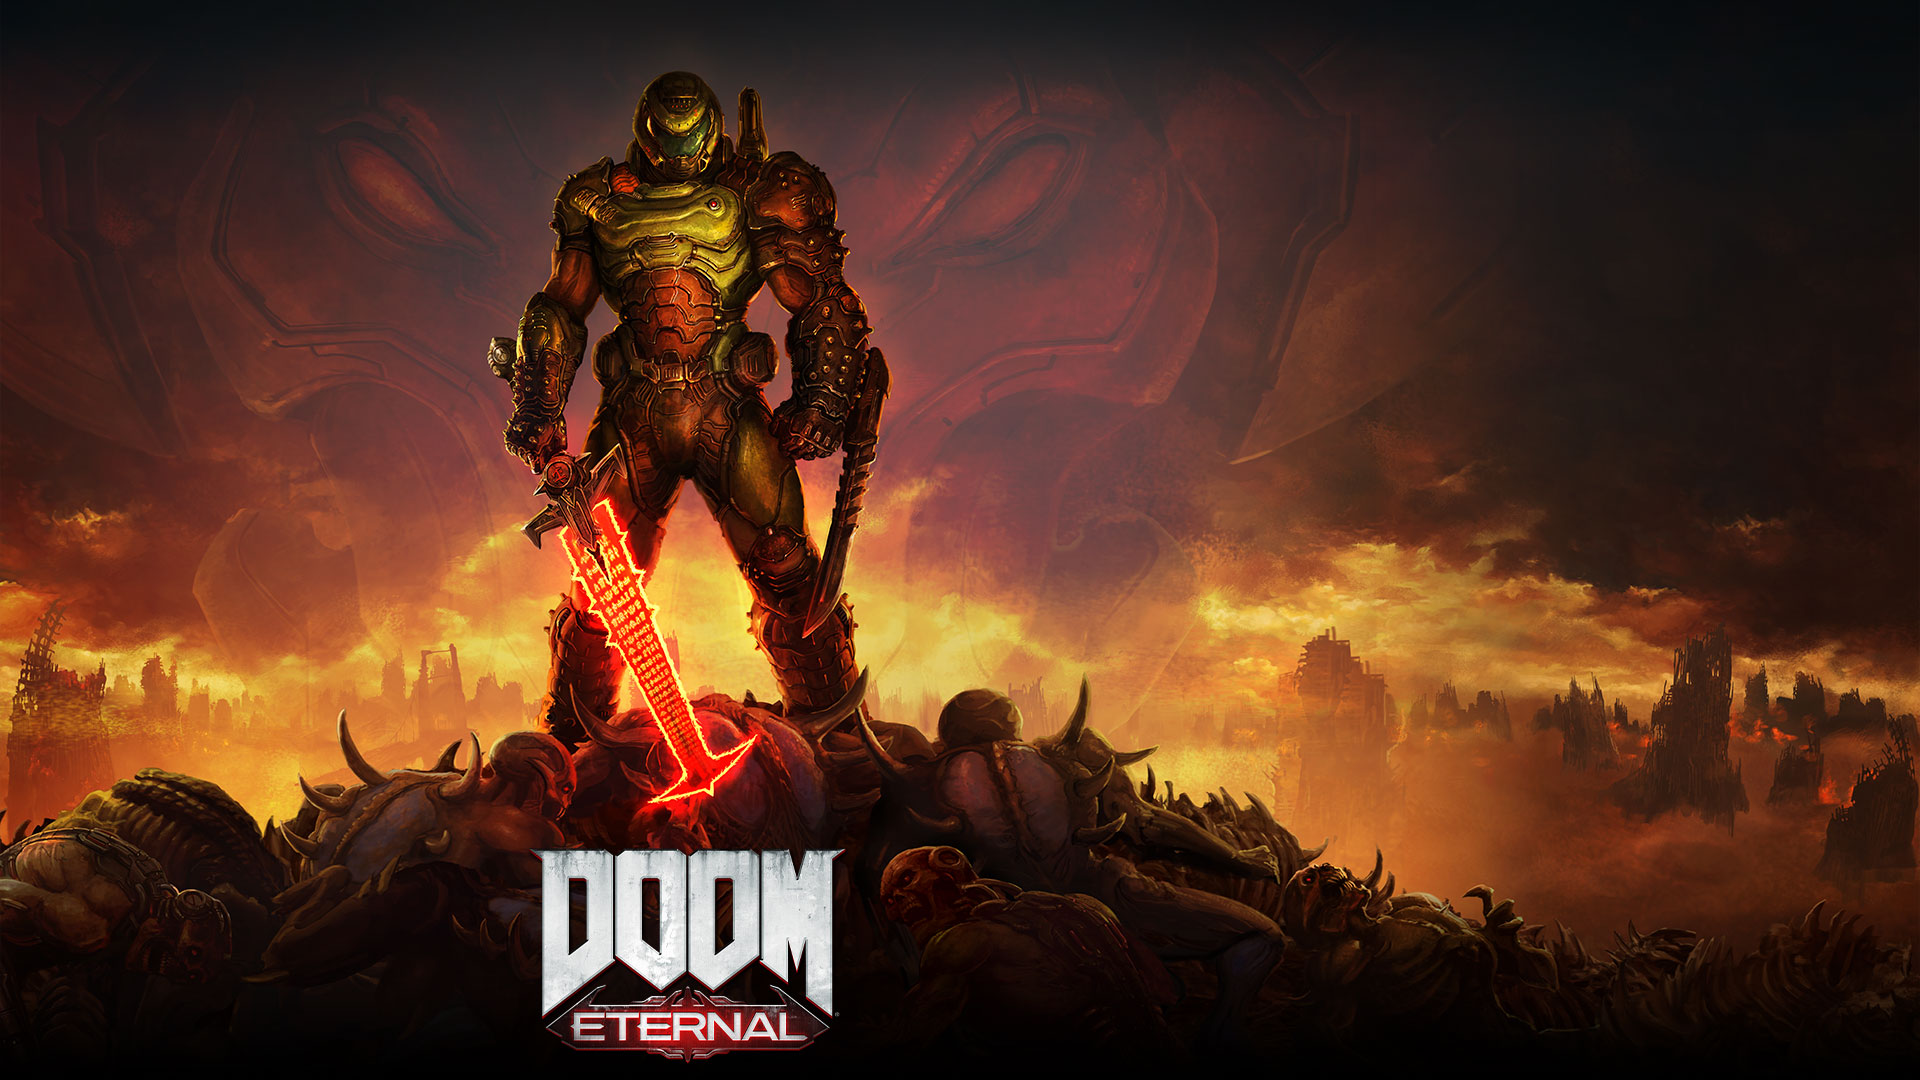 DOOM Eternal, A Slayer stands on top of a pile of dead demons with a smoky city in the background.